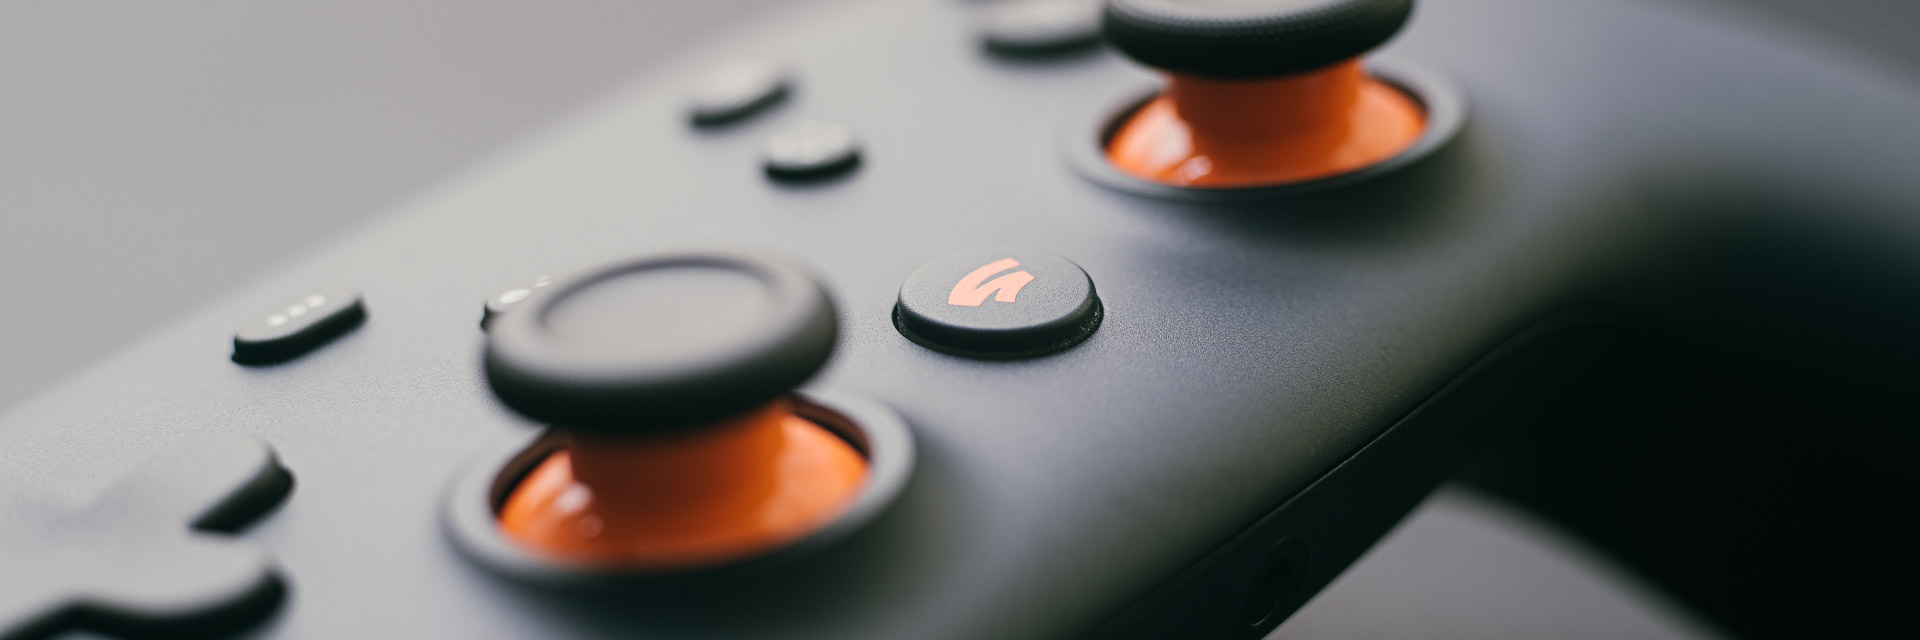 Architecting for user (and engineer) happiness during Stadia Controller setup Image